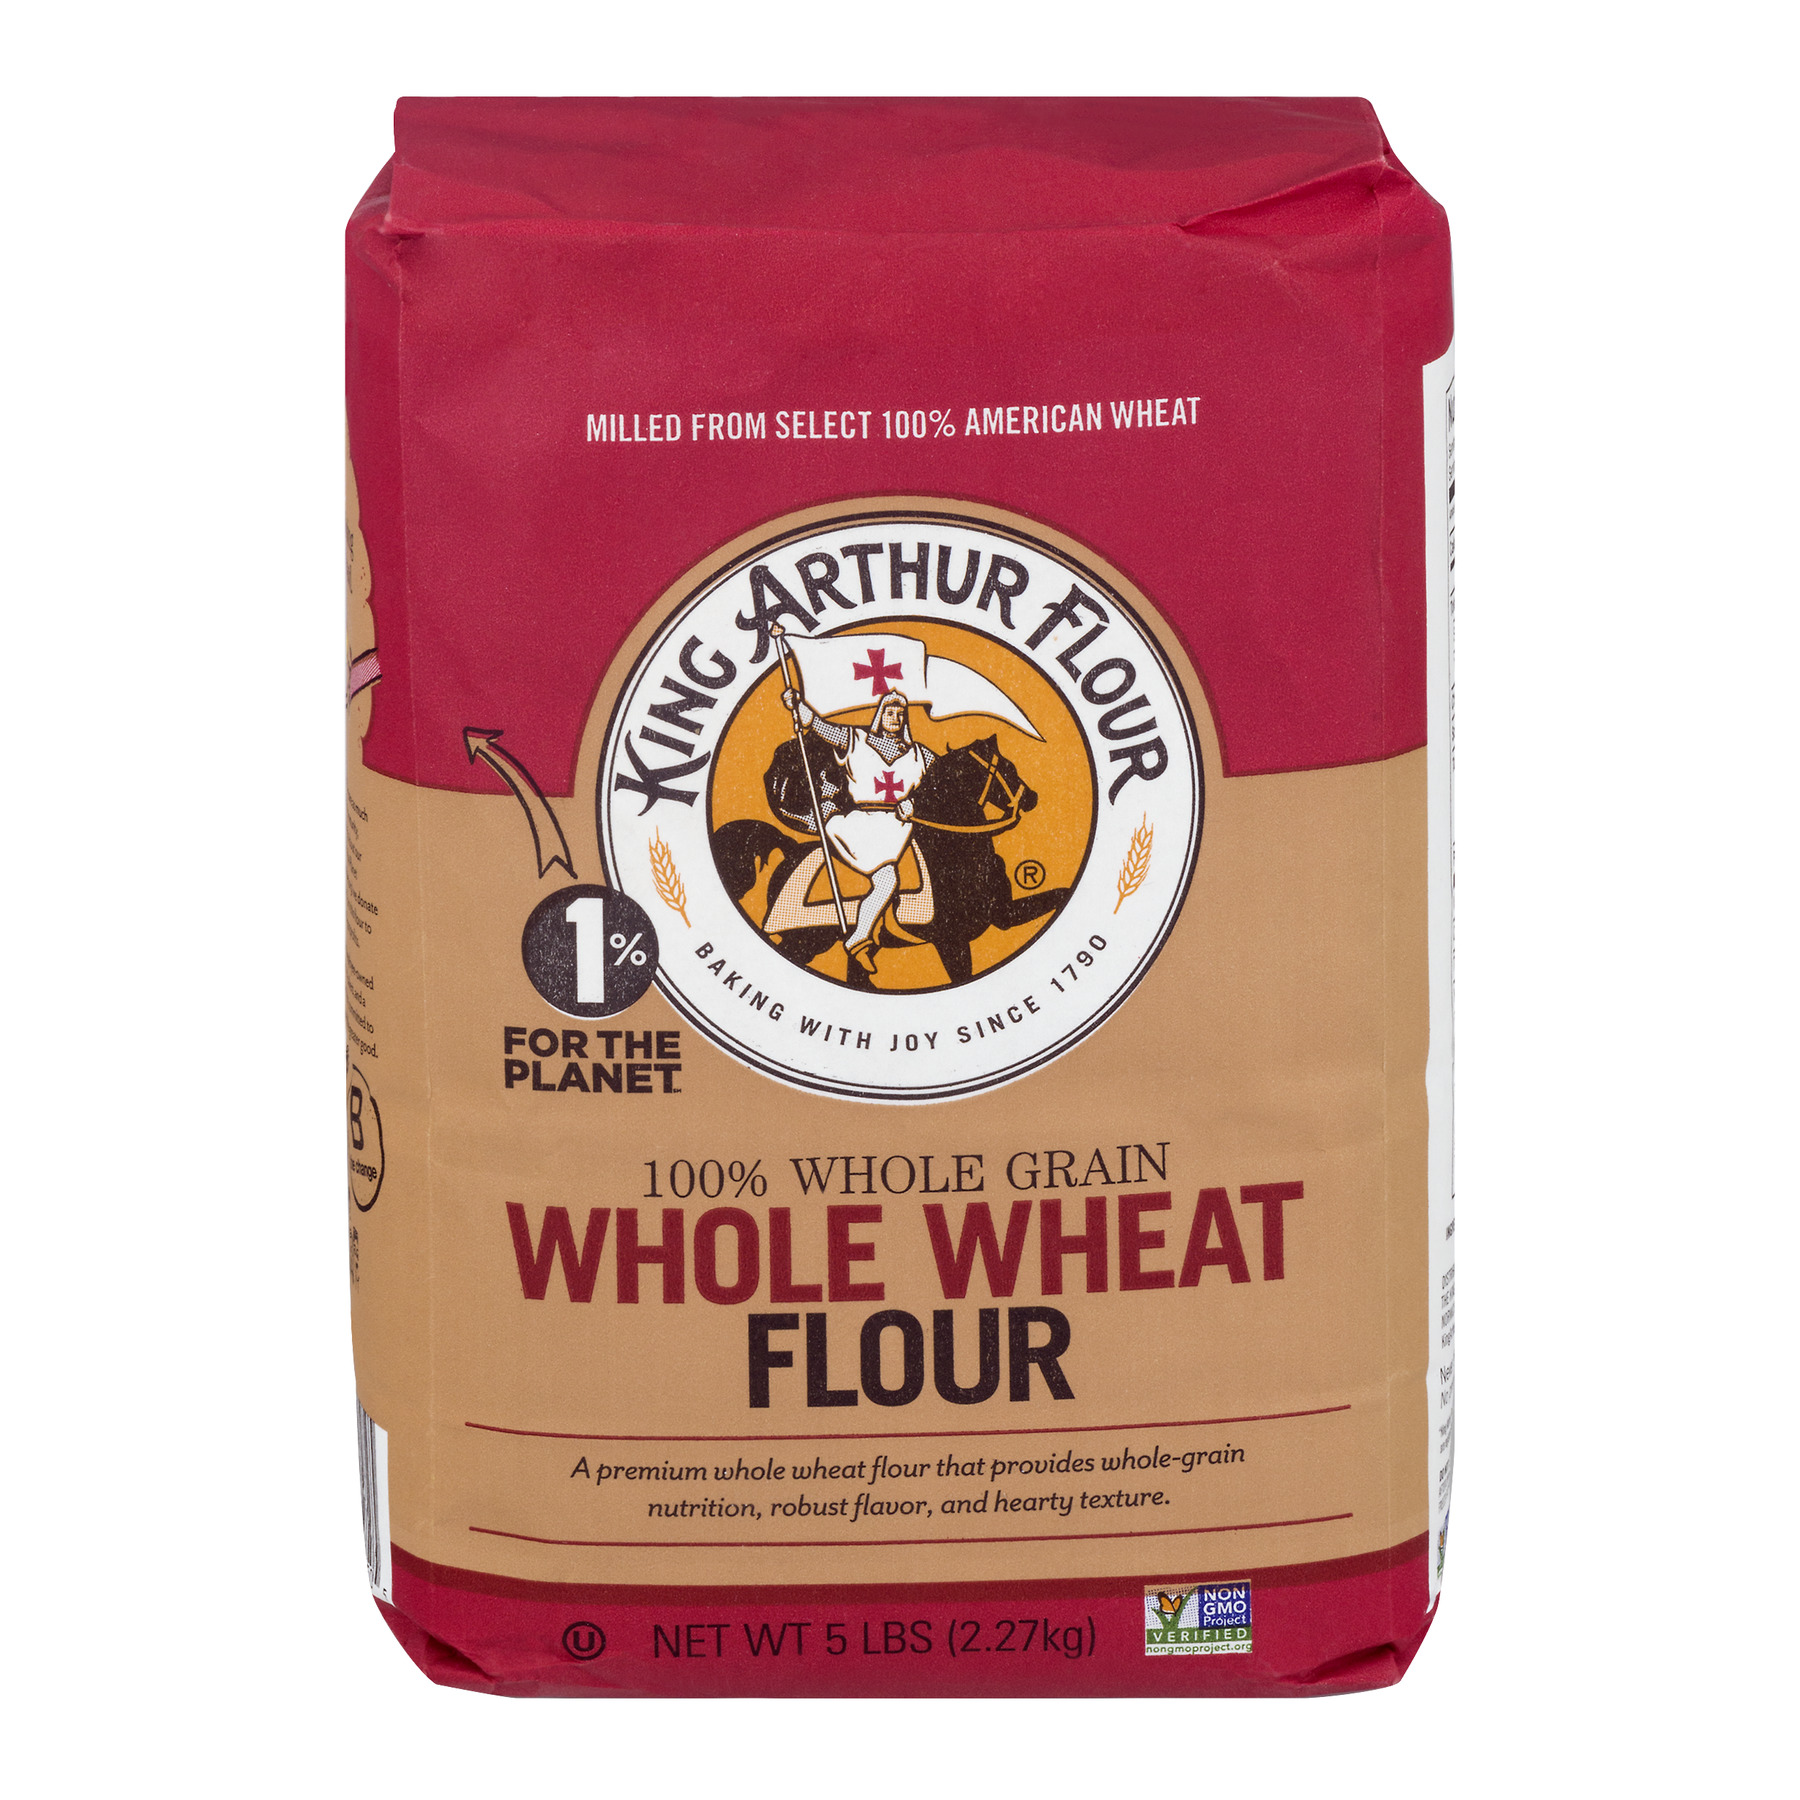 King Arthur Flour 100% Premium Whole Wheat Flour 5 lb. Bag